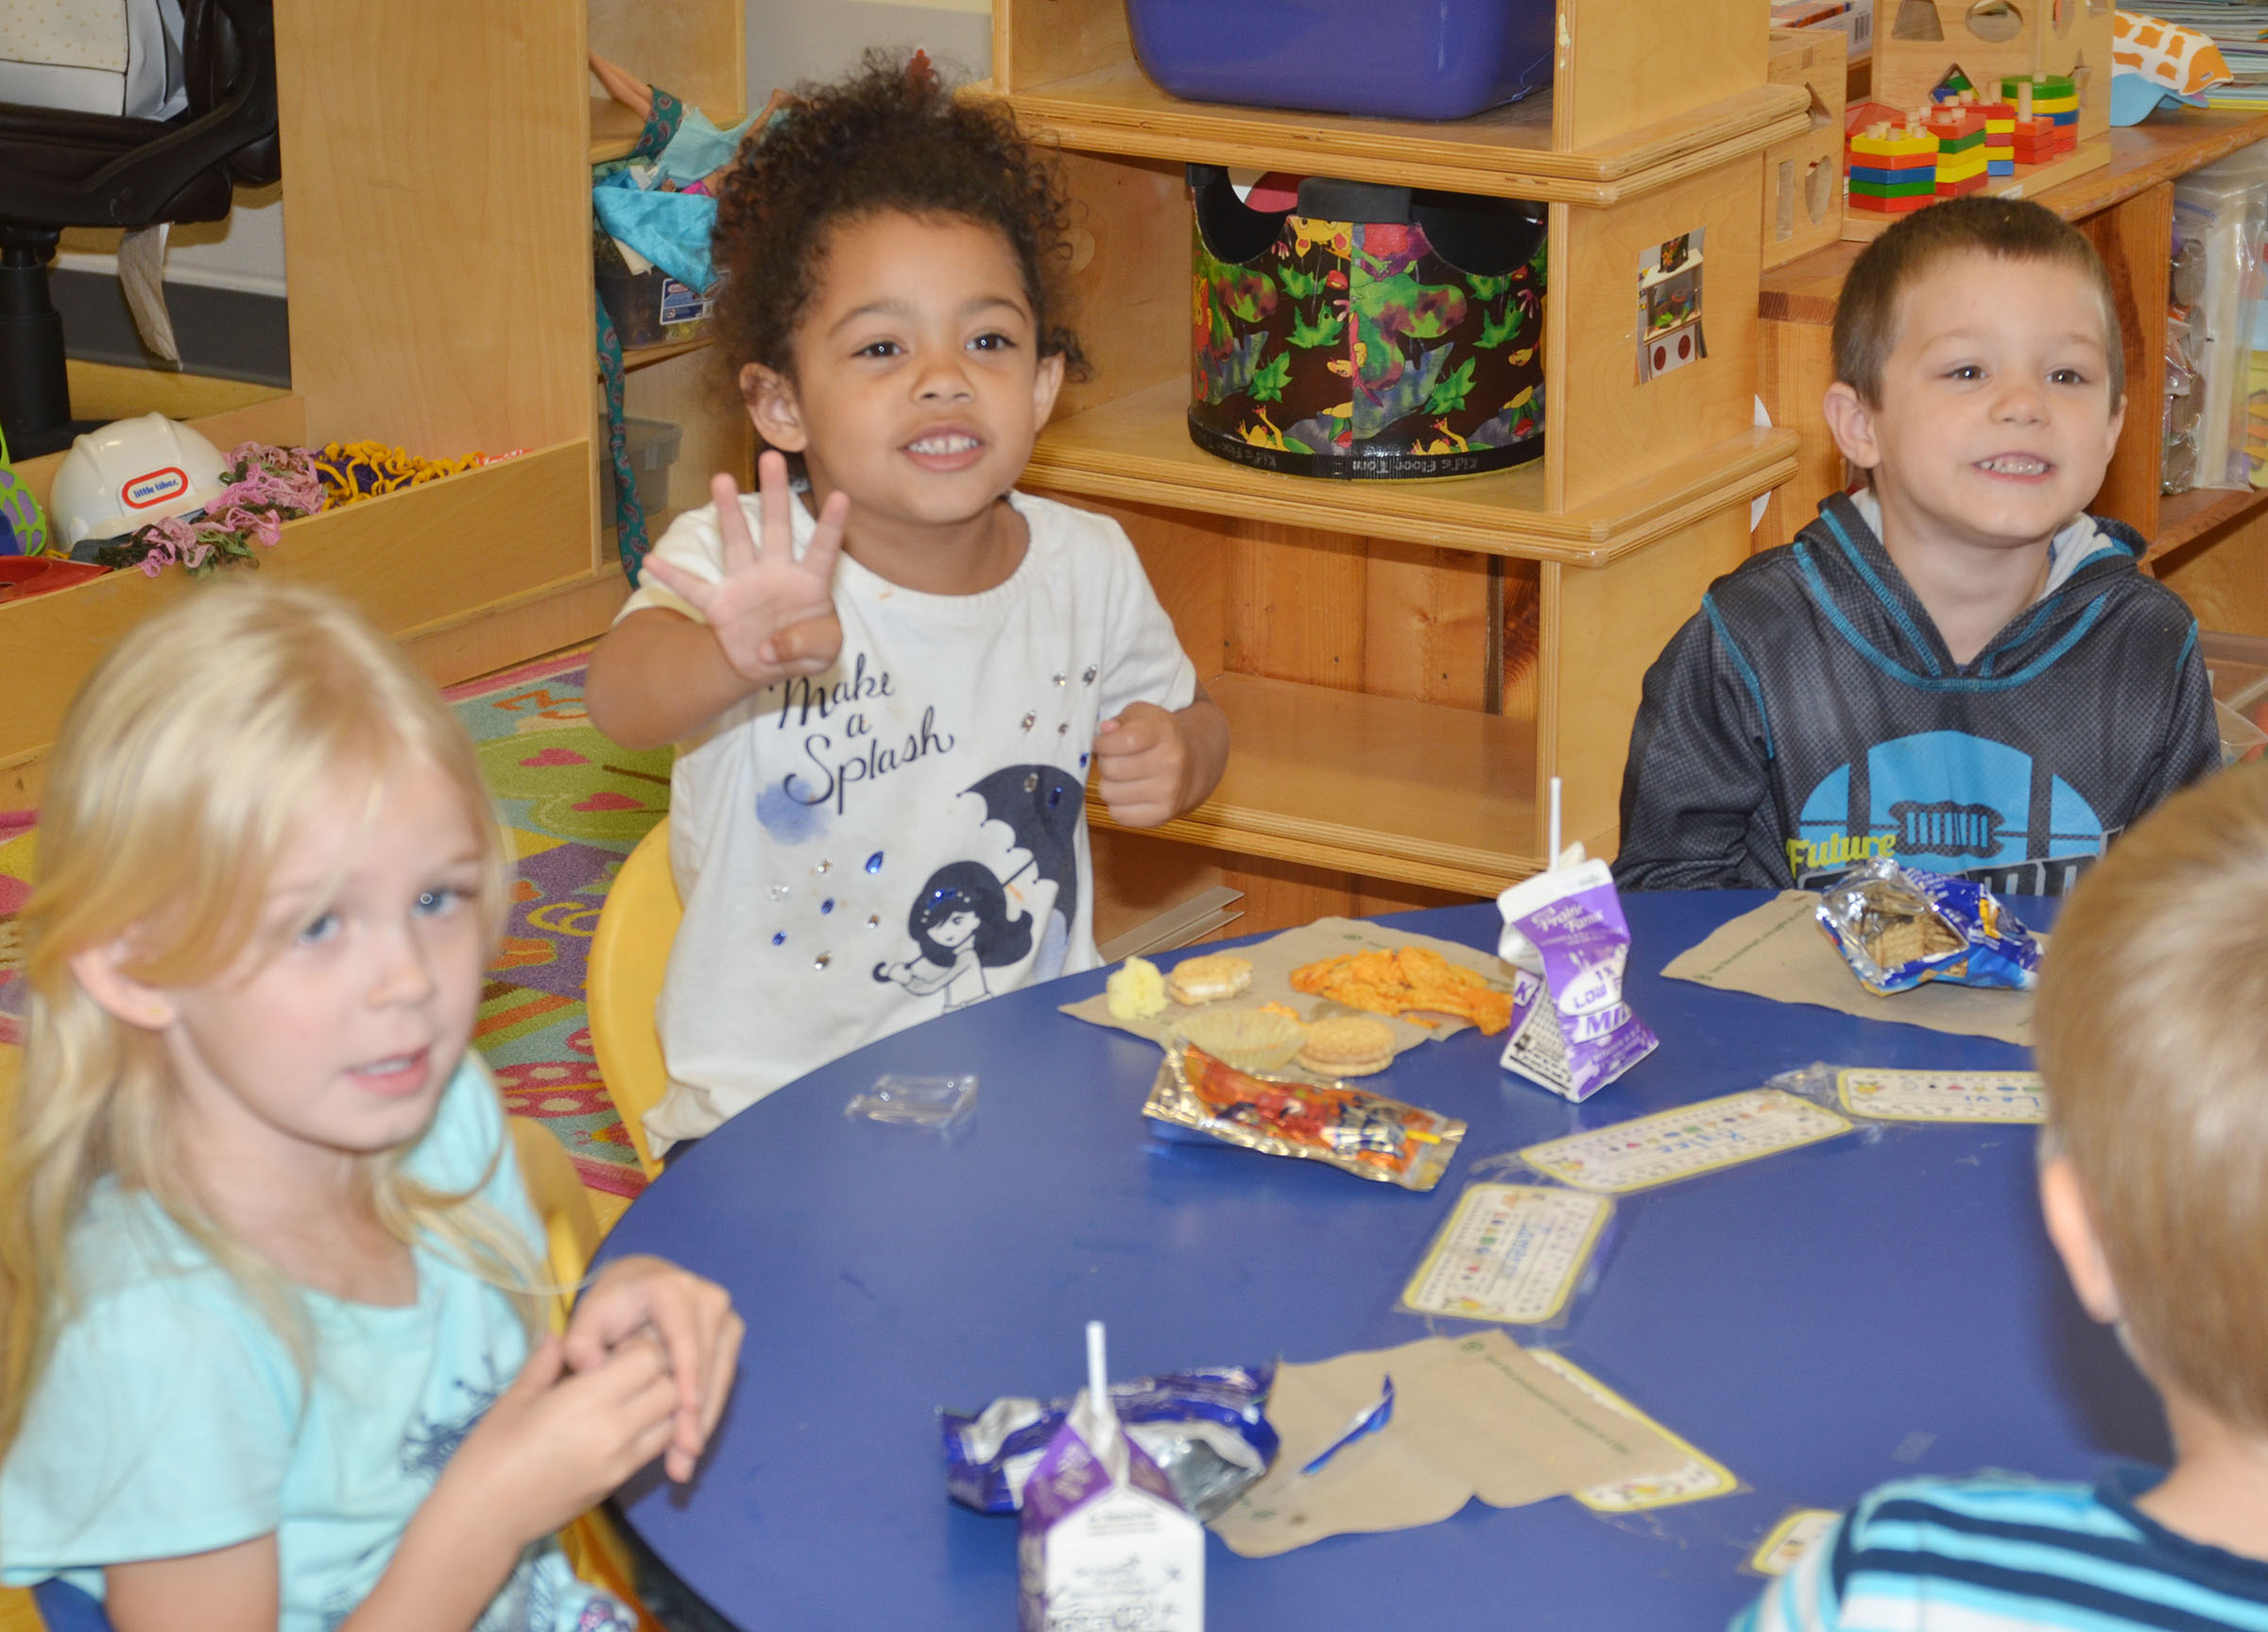 From left, CES preschool students Alinna Bray, Rylee Karr and Levi Ritchie have fun at their party.